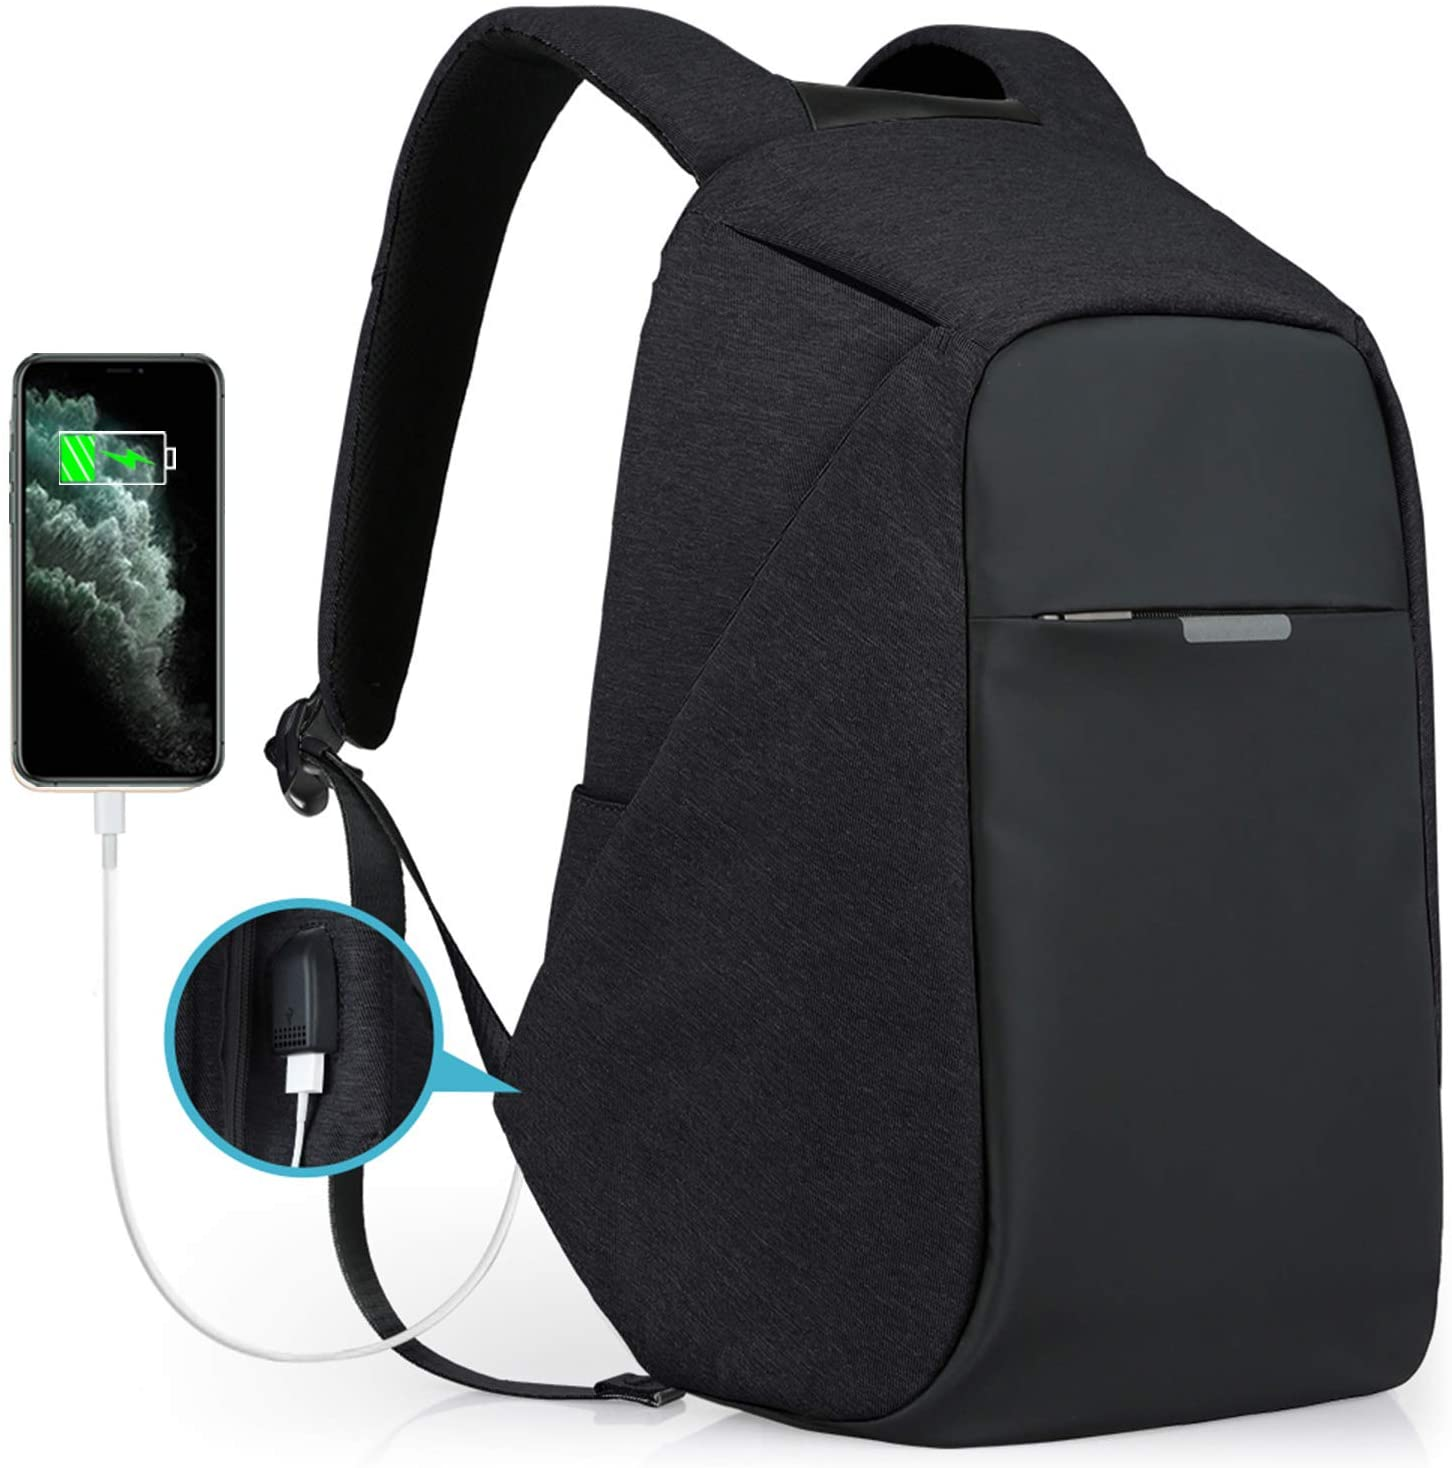 Black backpack with phone charger at the side